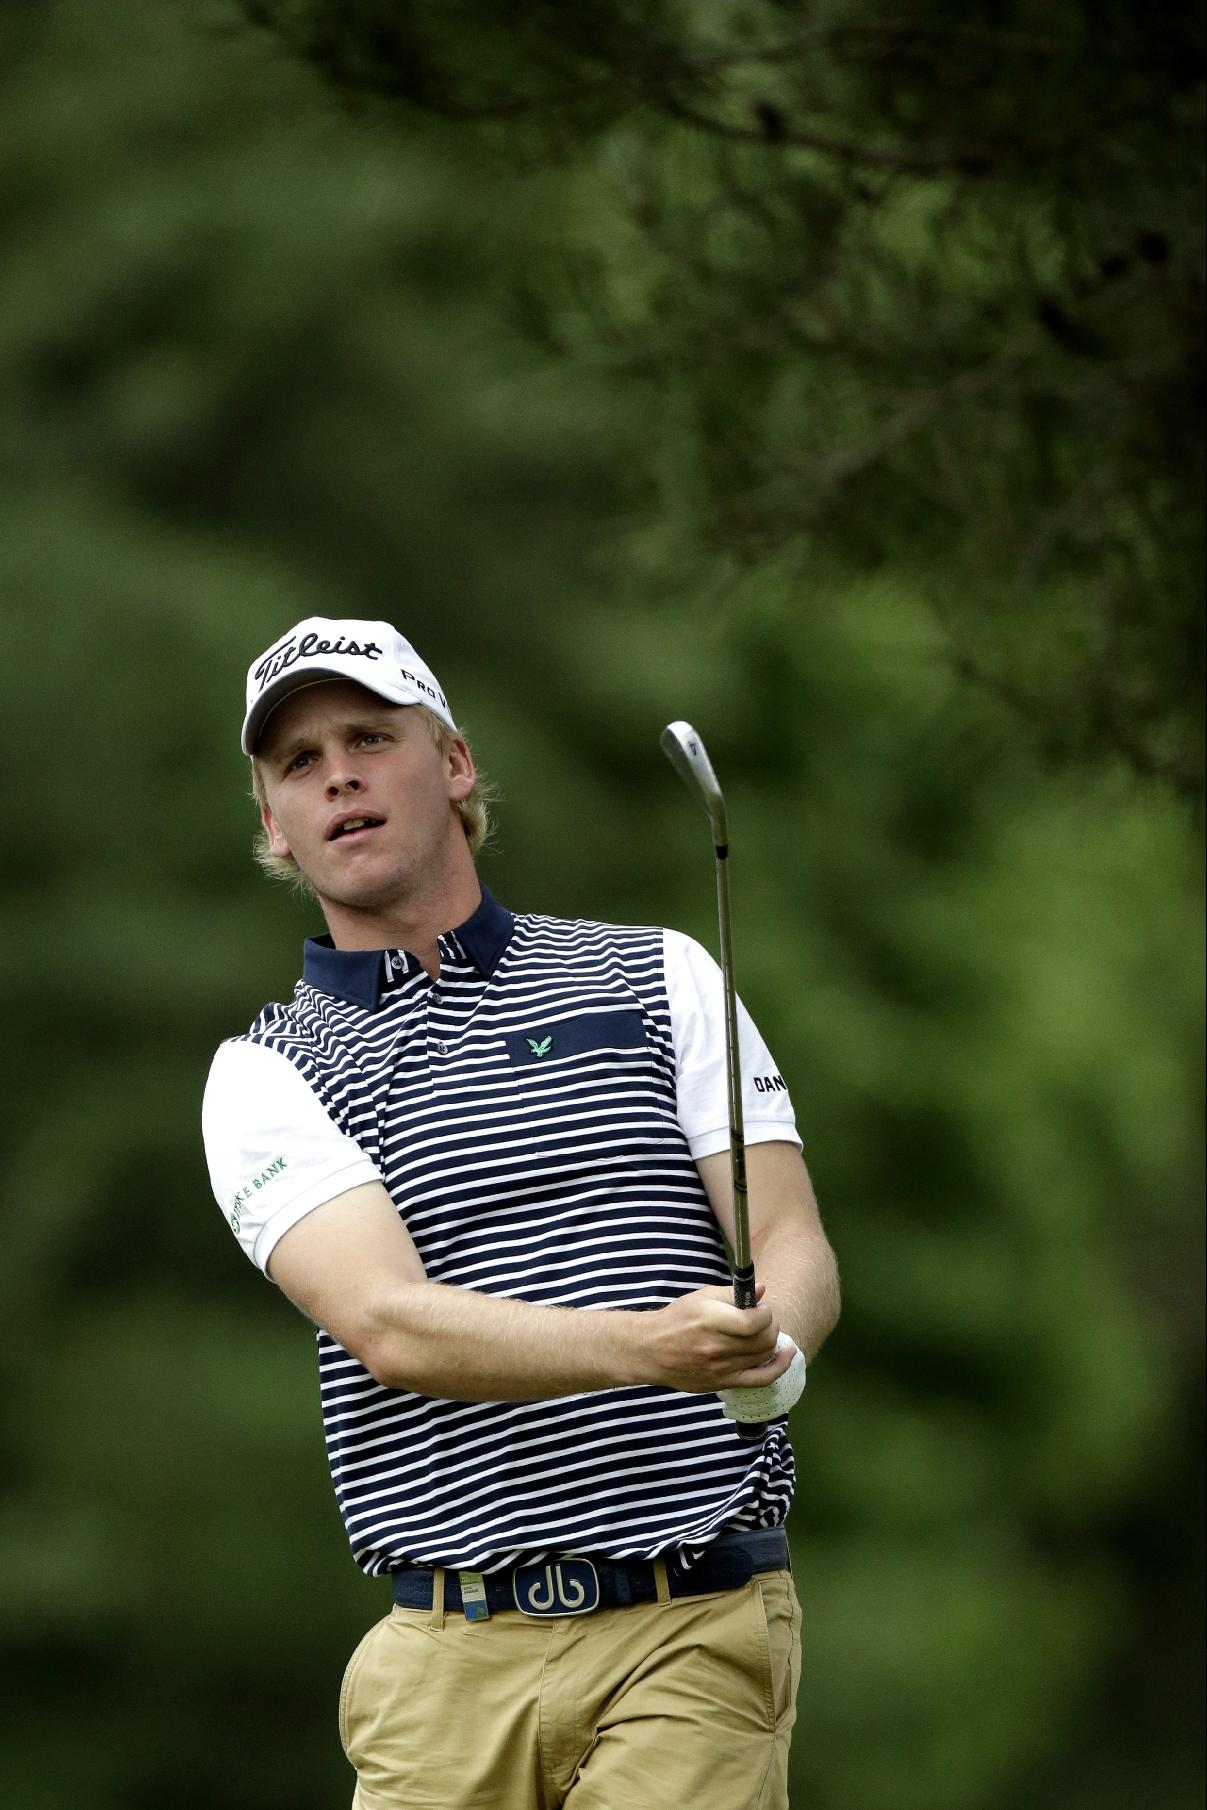 Morten Orum Madsen, of Denmark, tees off on the eighth hole during the first round of the U.S. Open golf tournament at Merion Golf Club, Friday, June 14, 2013, in Ardmore, Pa